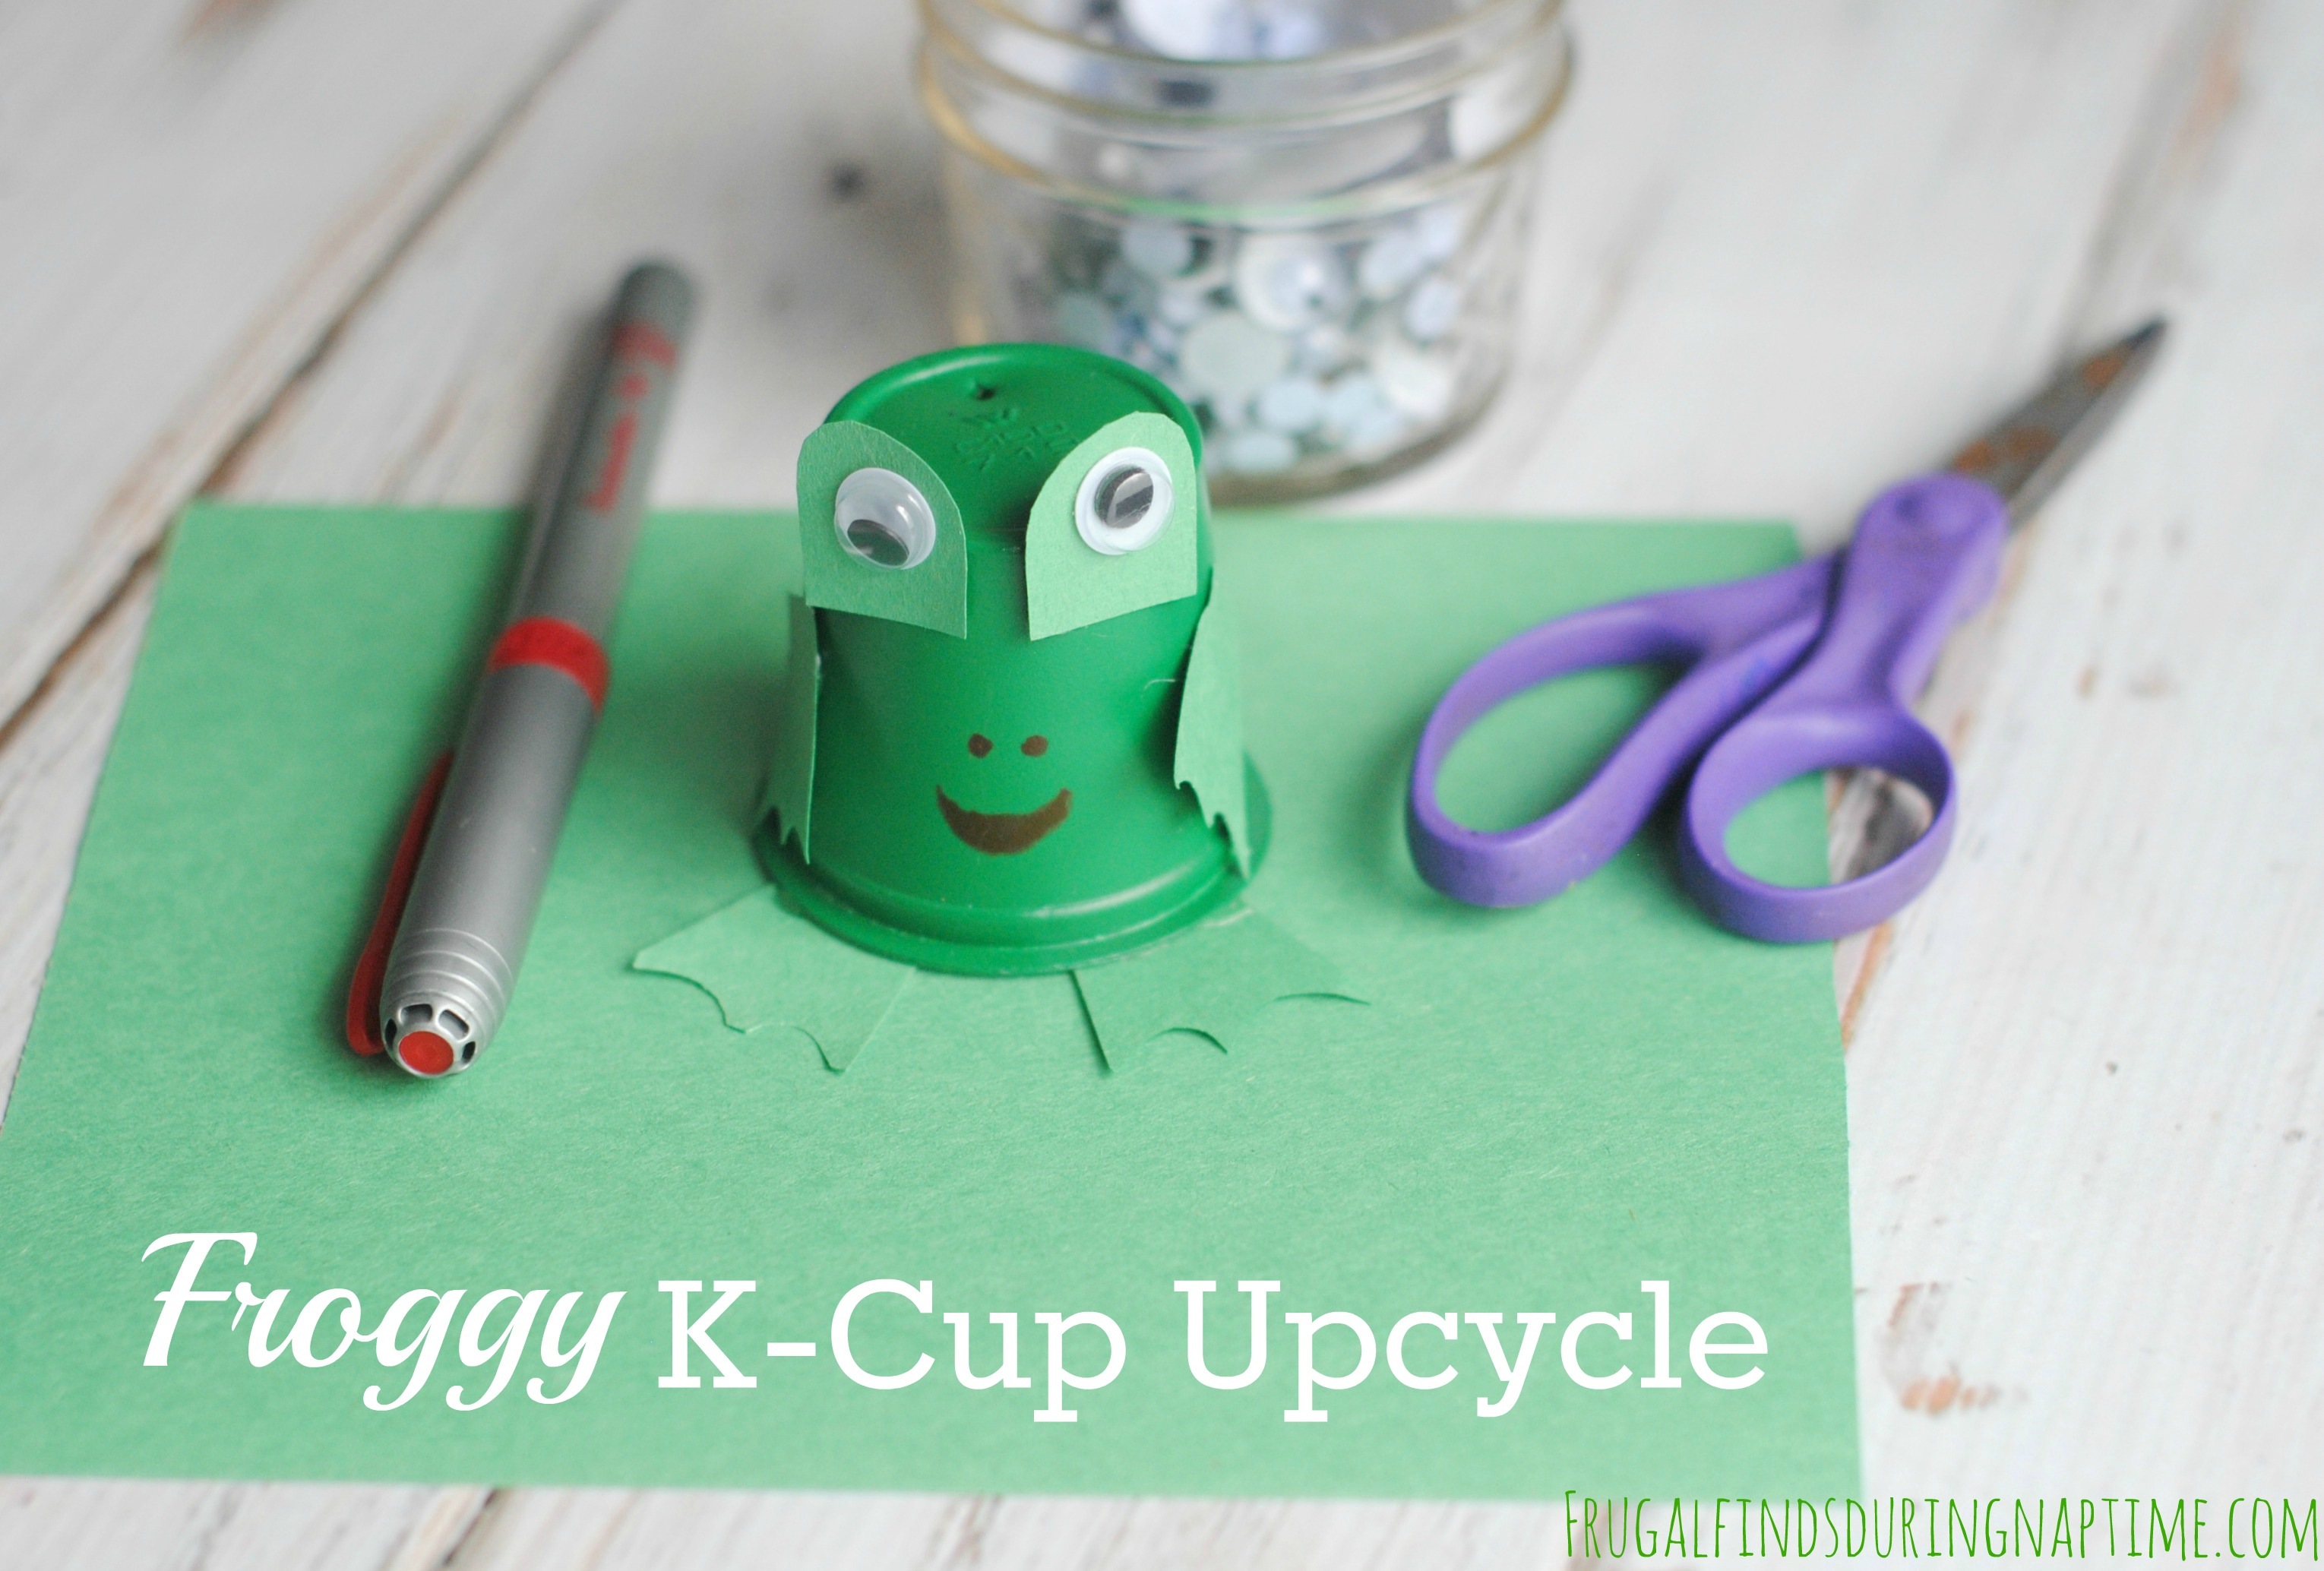 Froggy K-Cup Upcycle